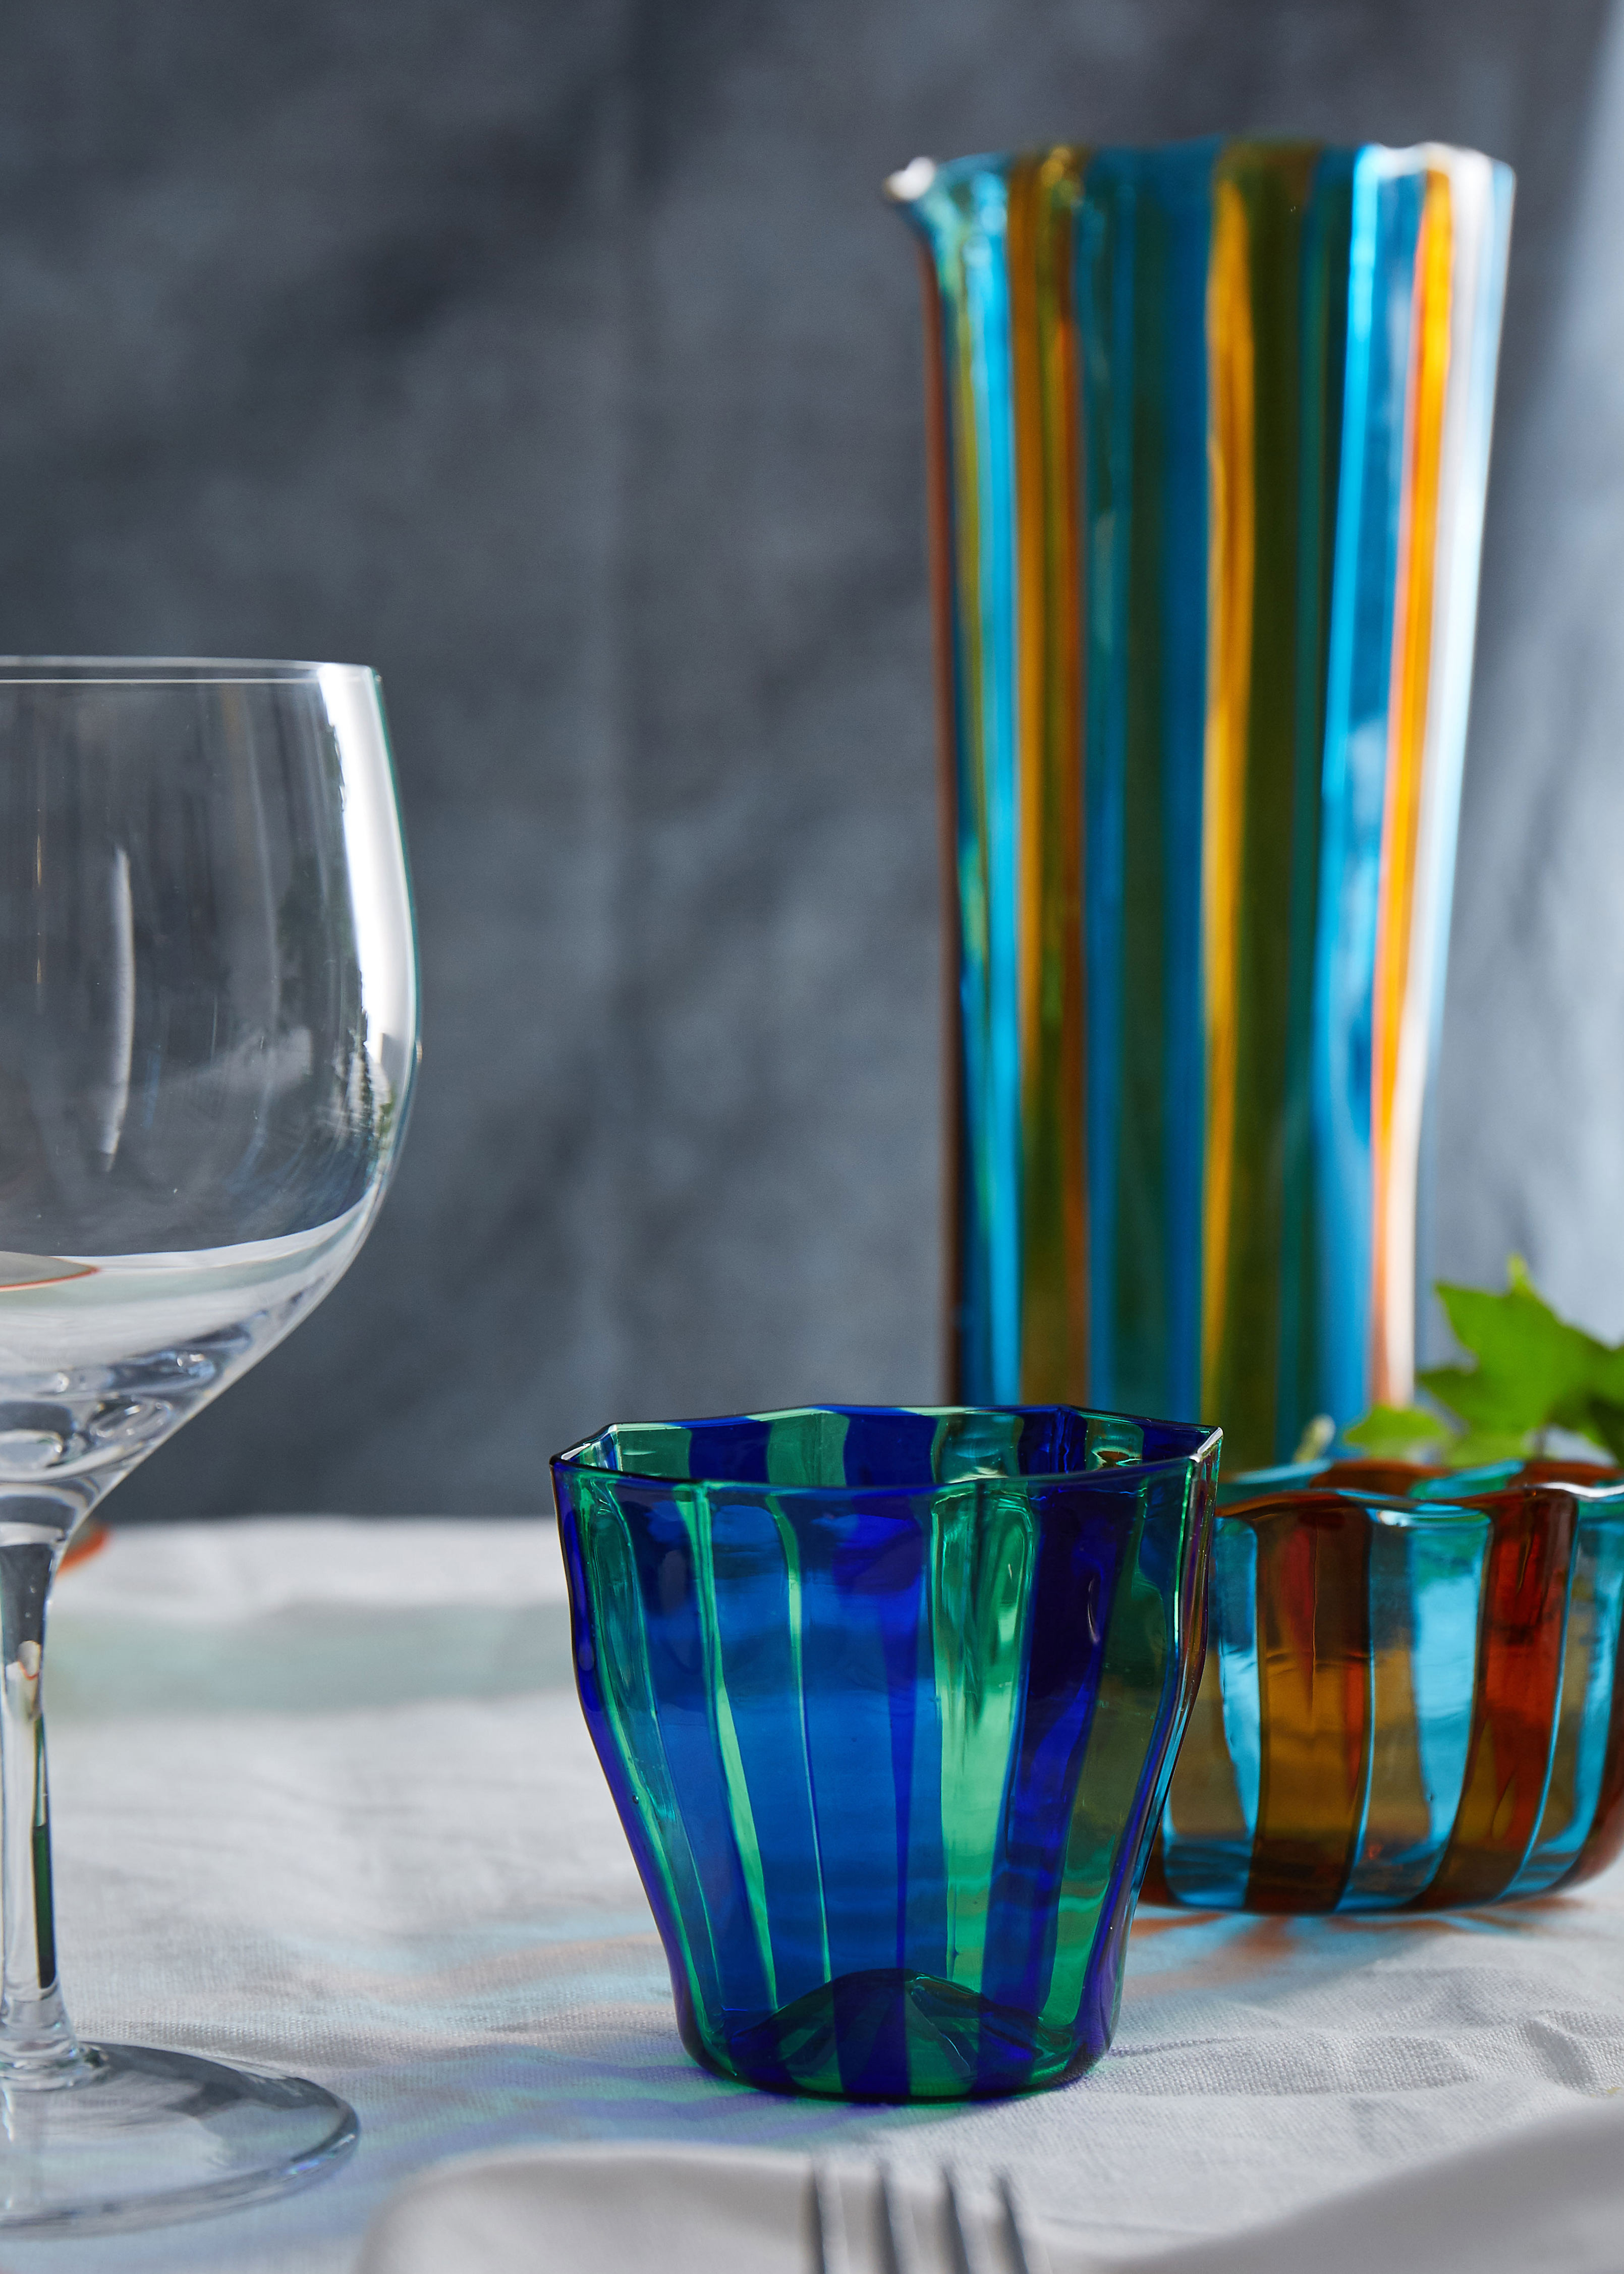 blue green glass vase of rosanna murano glass collection campbell rey intended for rosanna murano glass collection